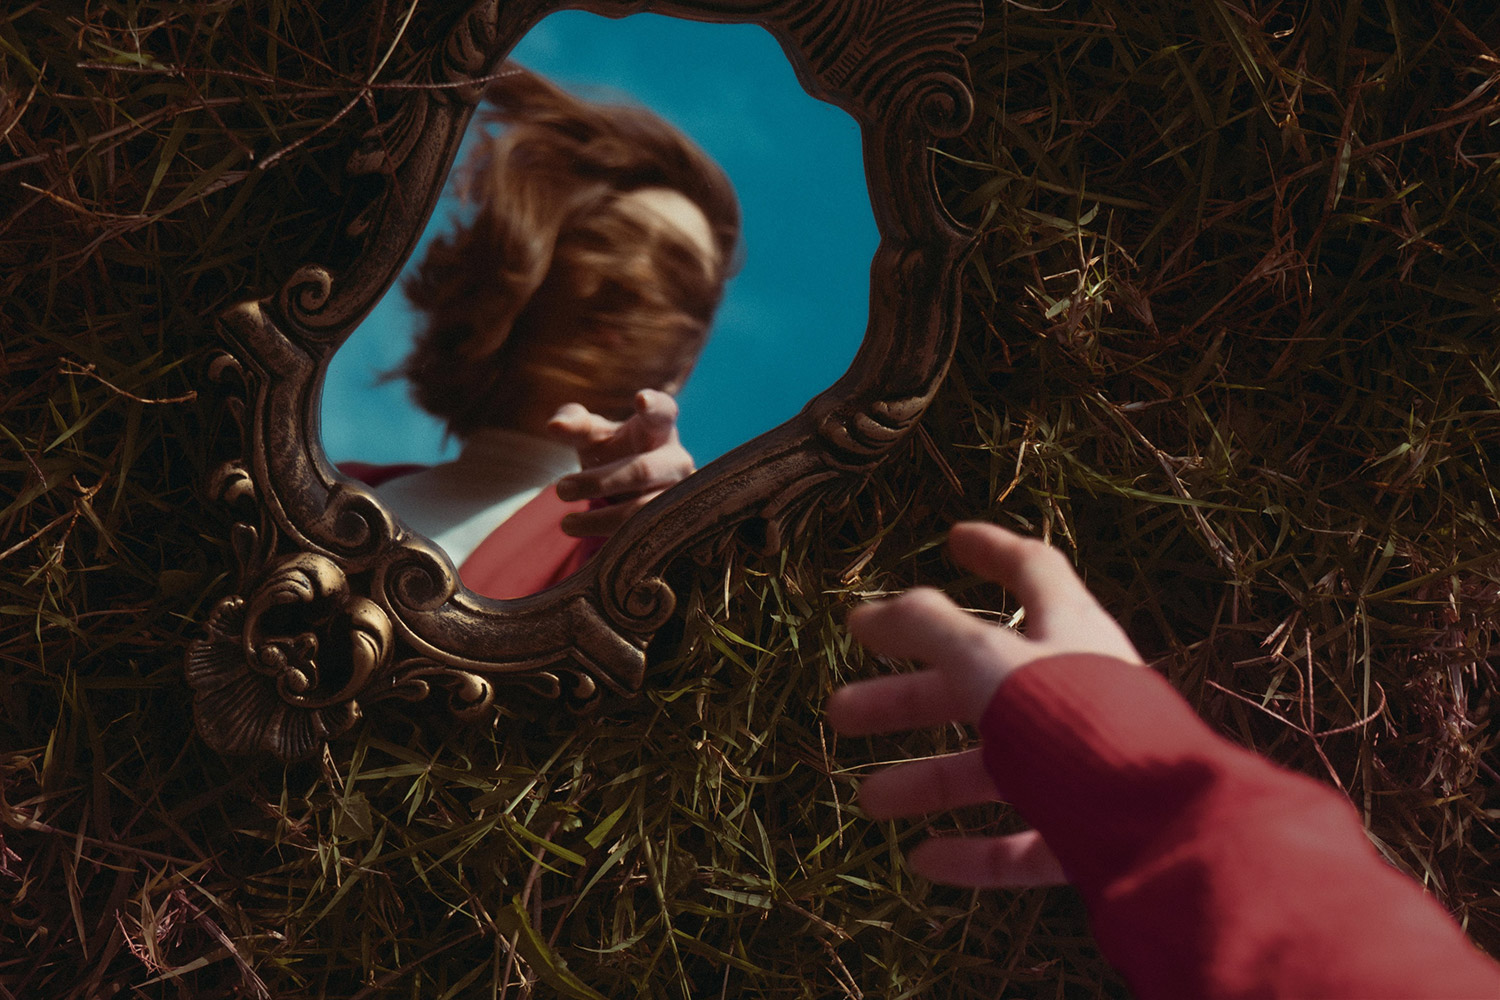 Haunted Mirror for Sale–Is The Risk Worth It?